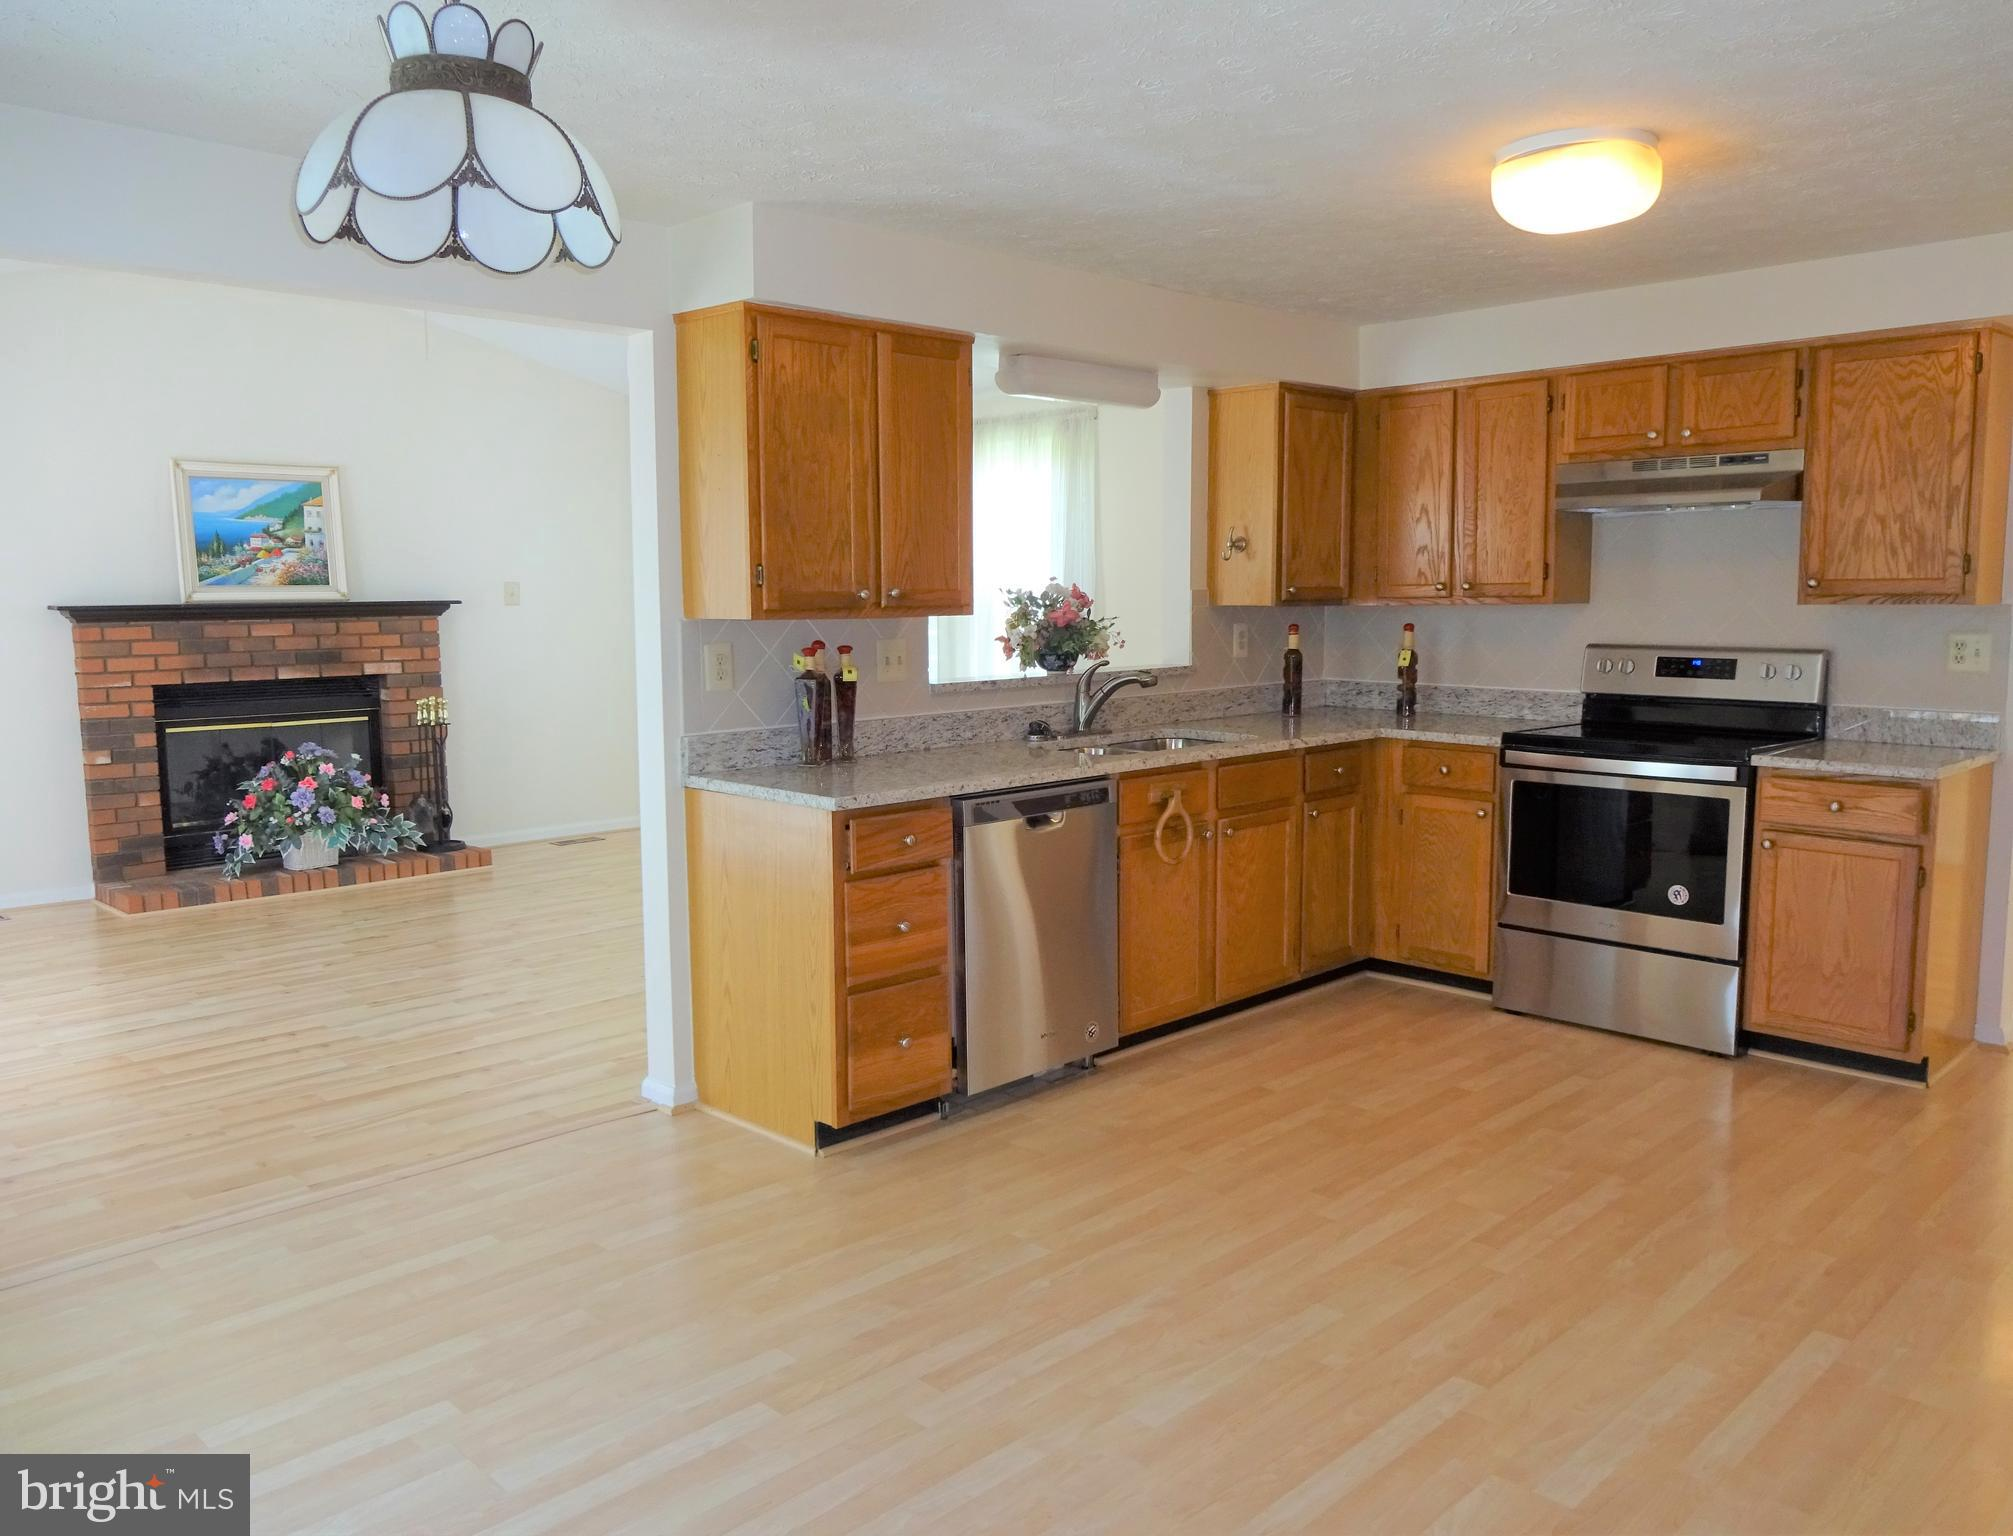 8232 EMORY GROVE ROAD, GAITHERSBURG, MD 20877